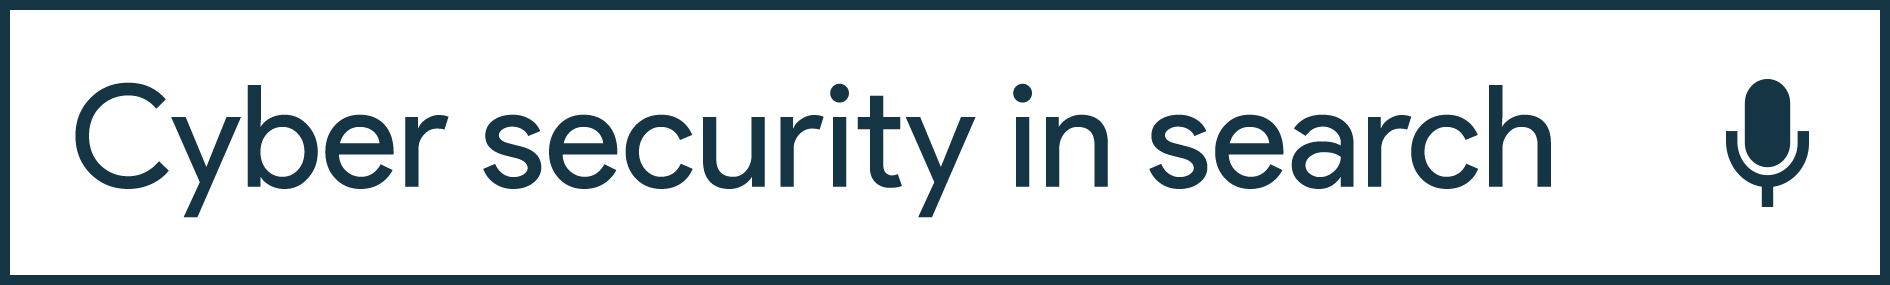 Security in search header